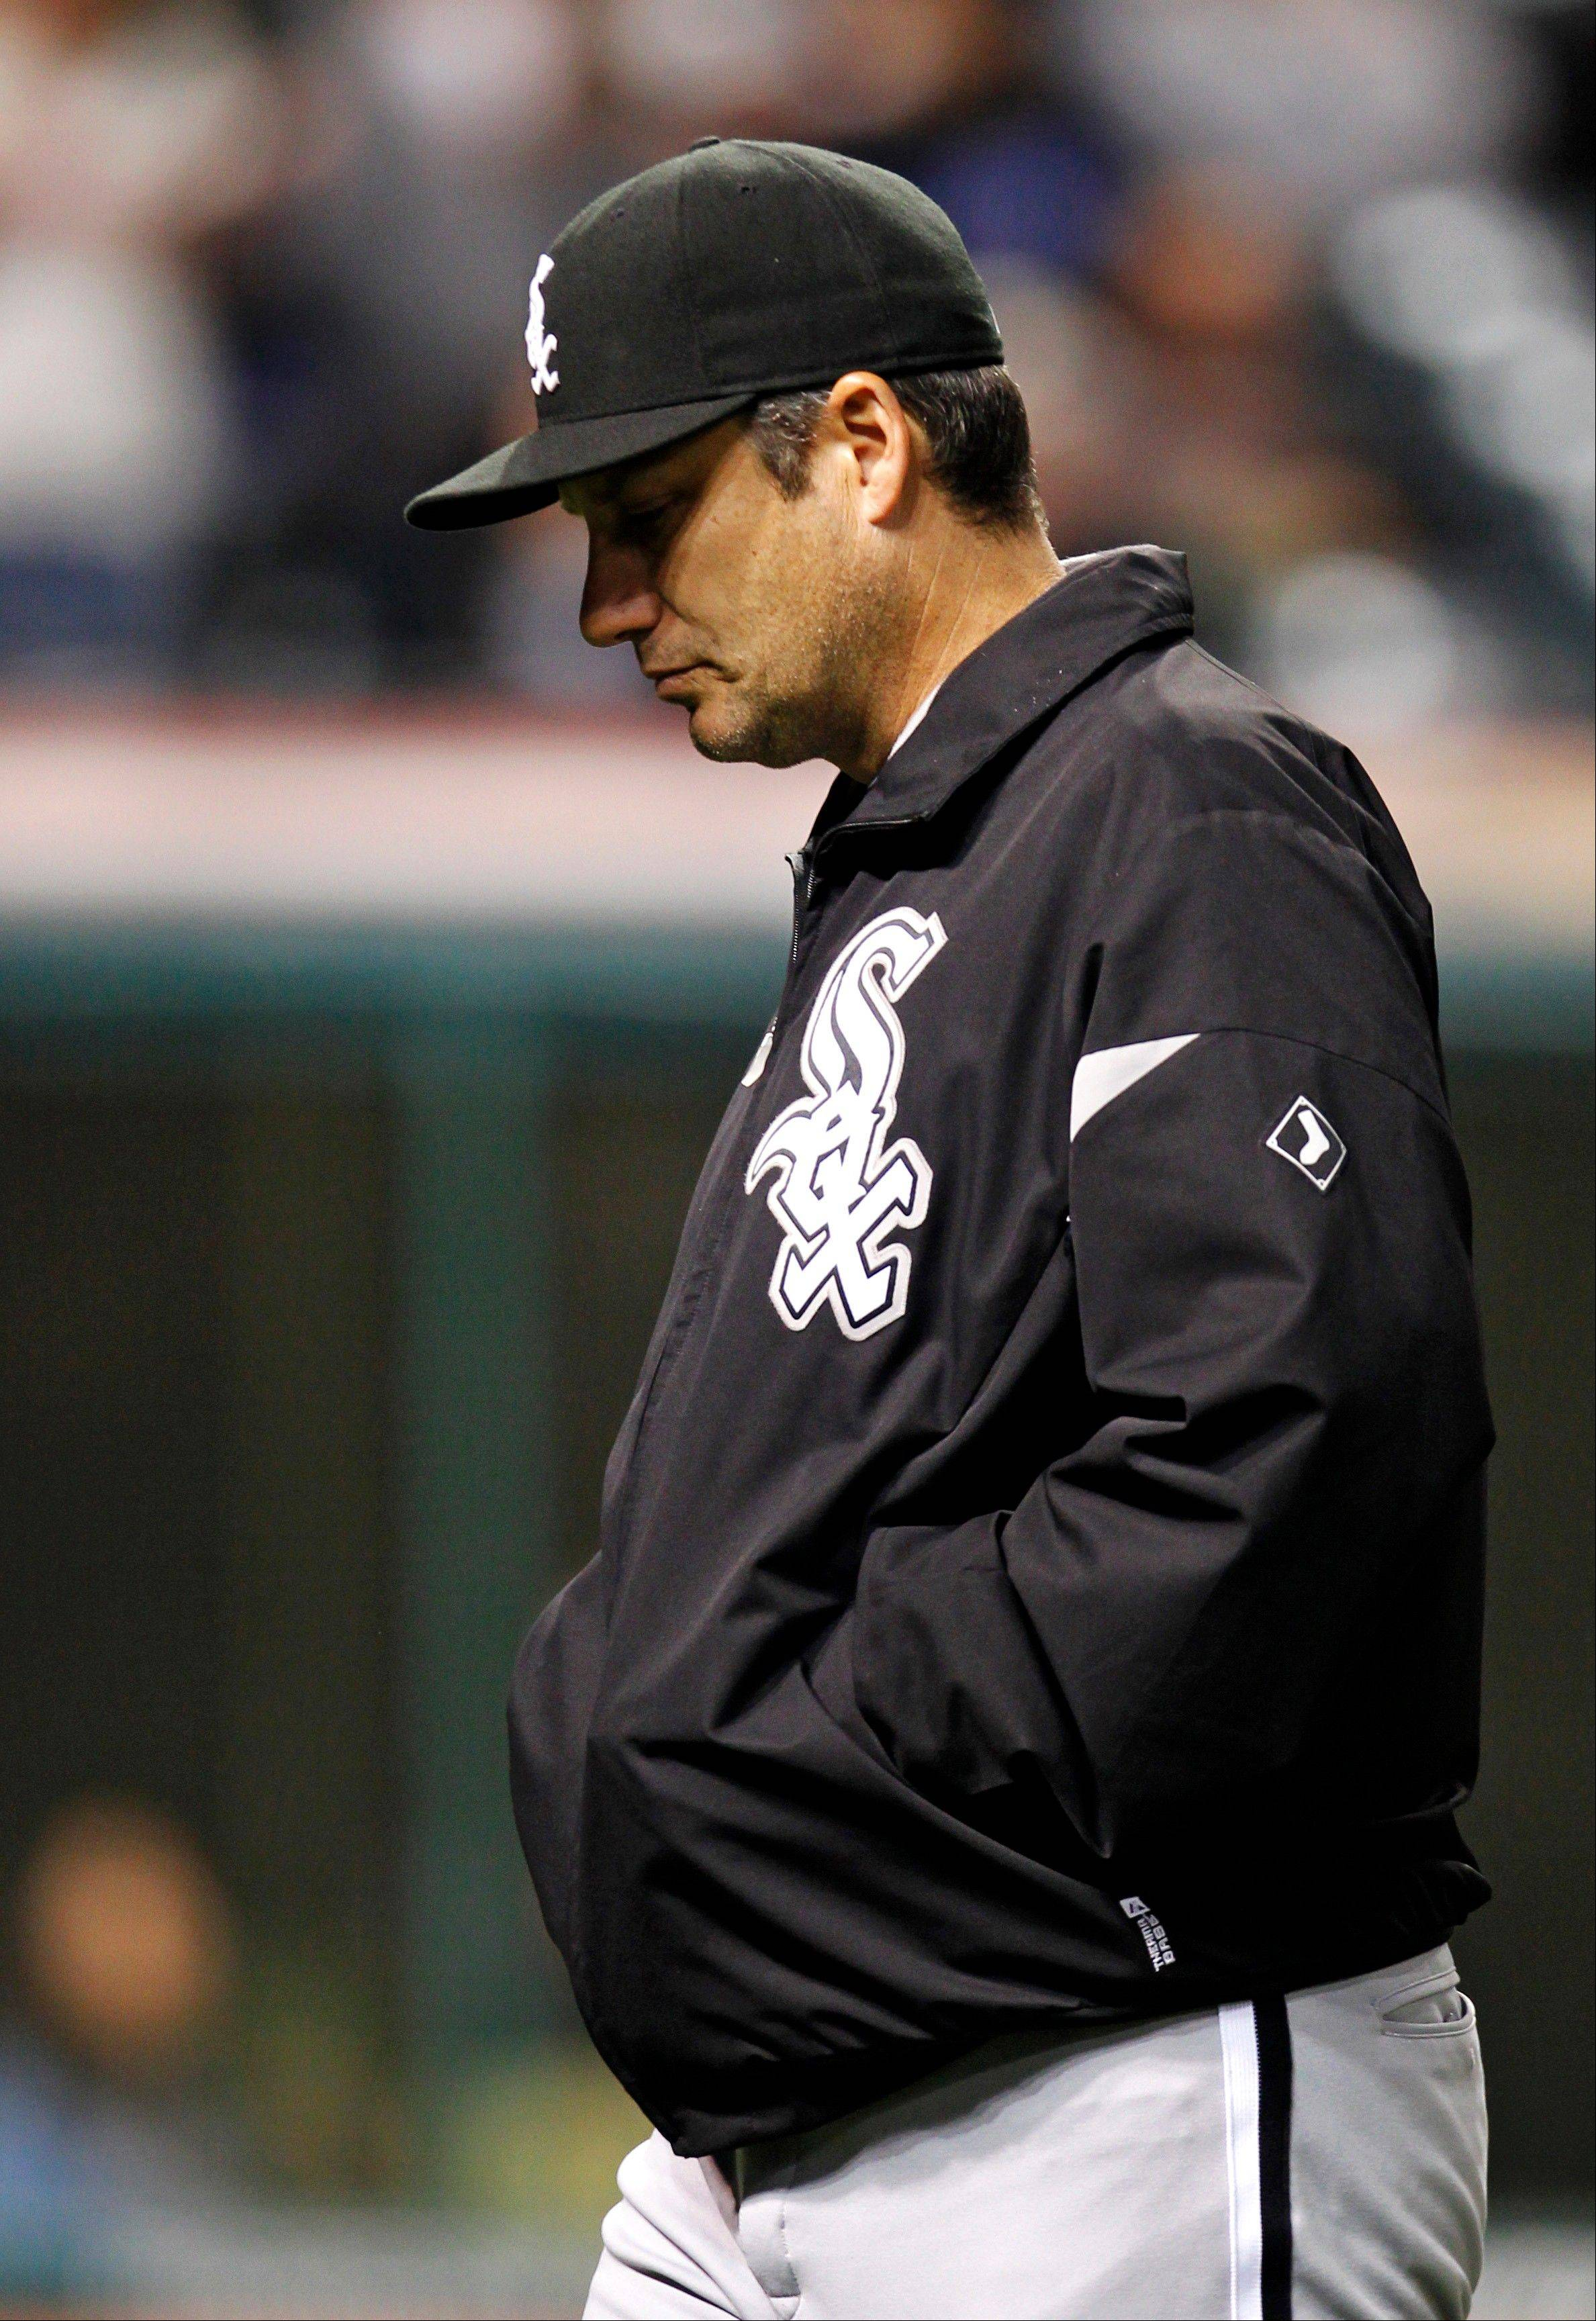 White Sox manager Robin Ventura walks back to the dugout during the final game of the season last week.